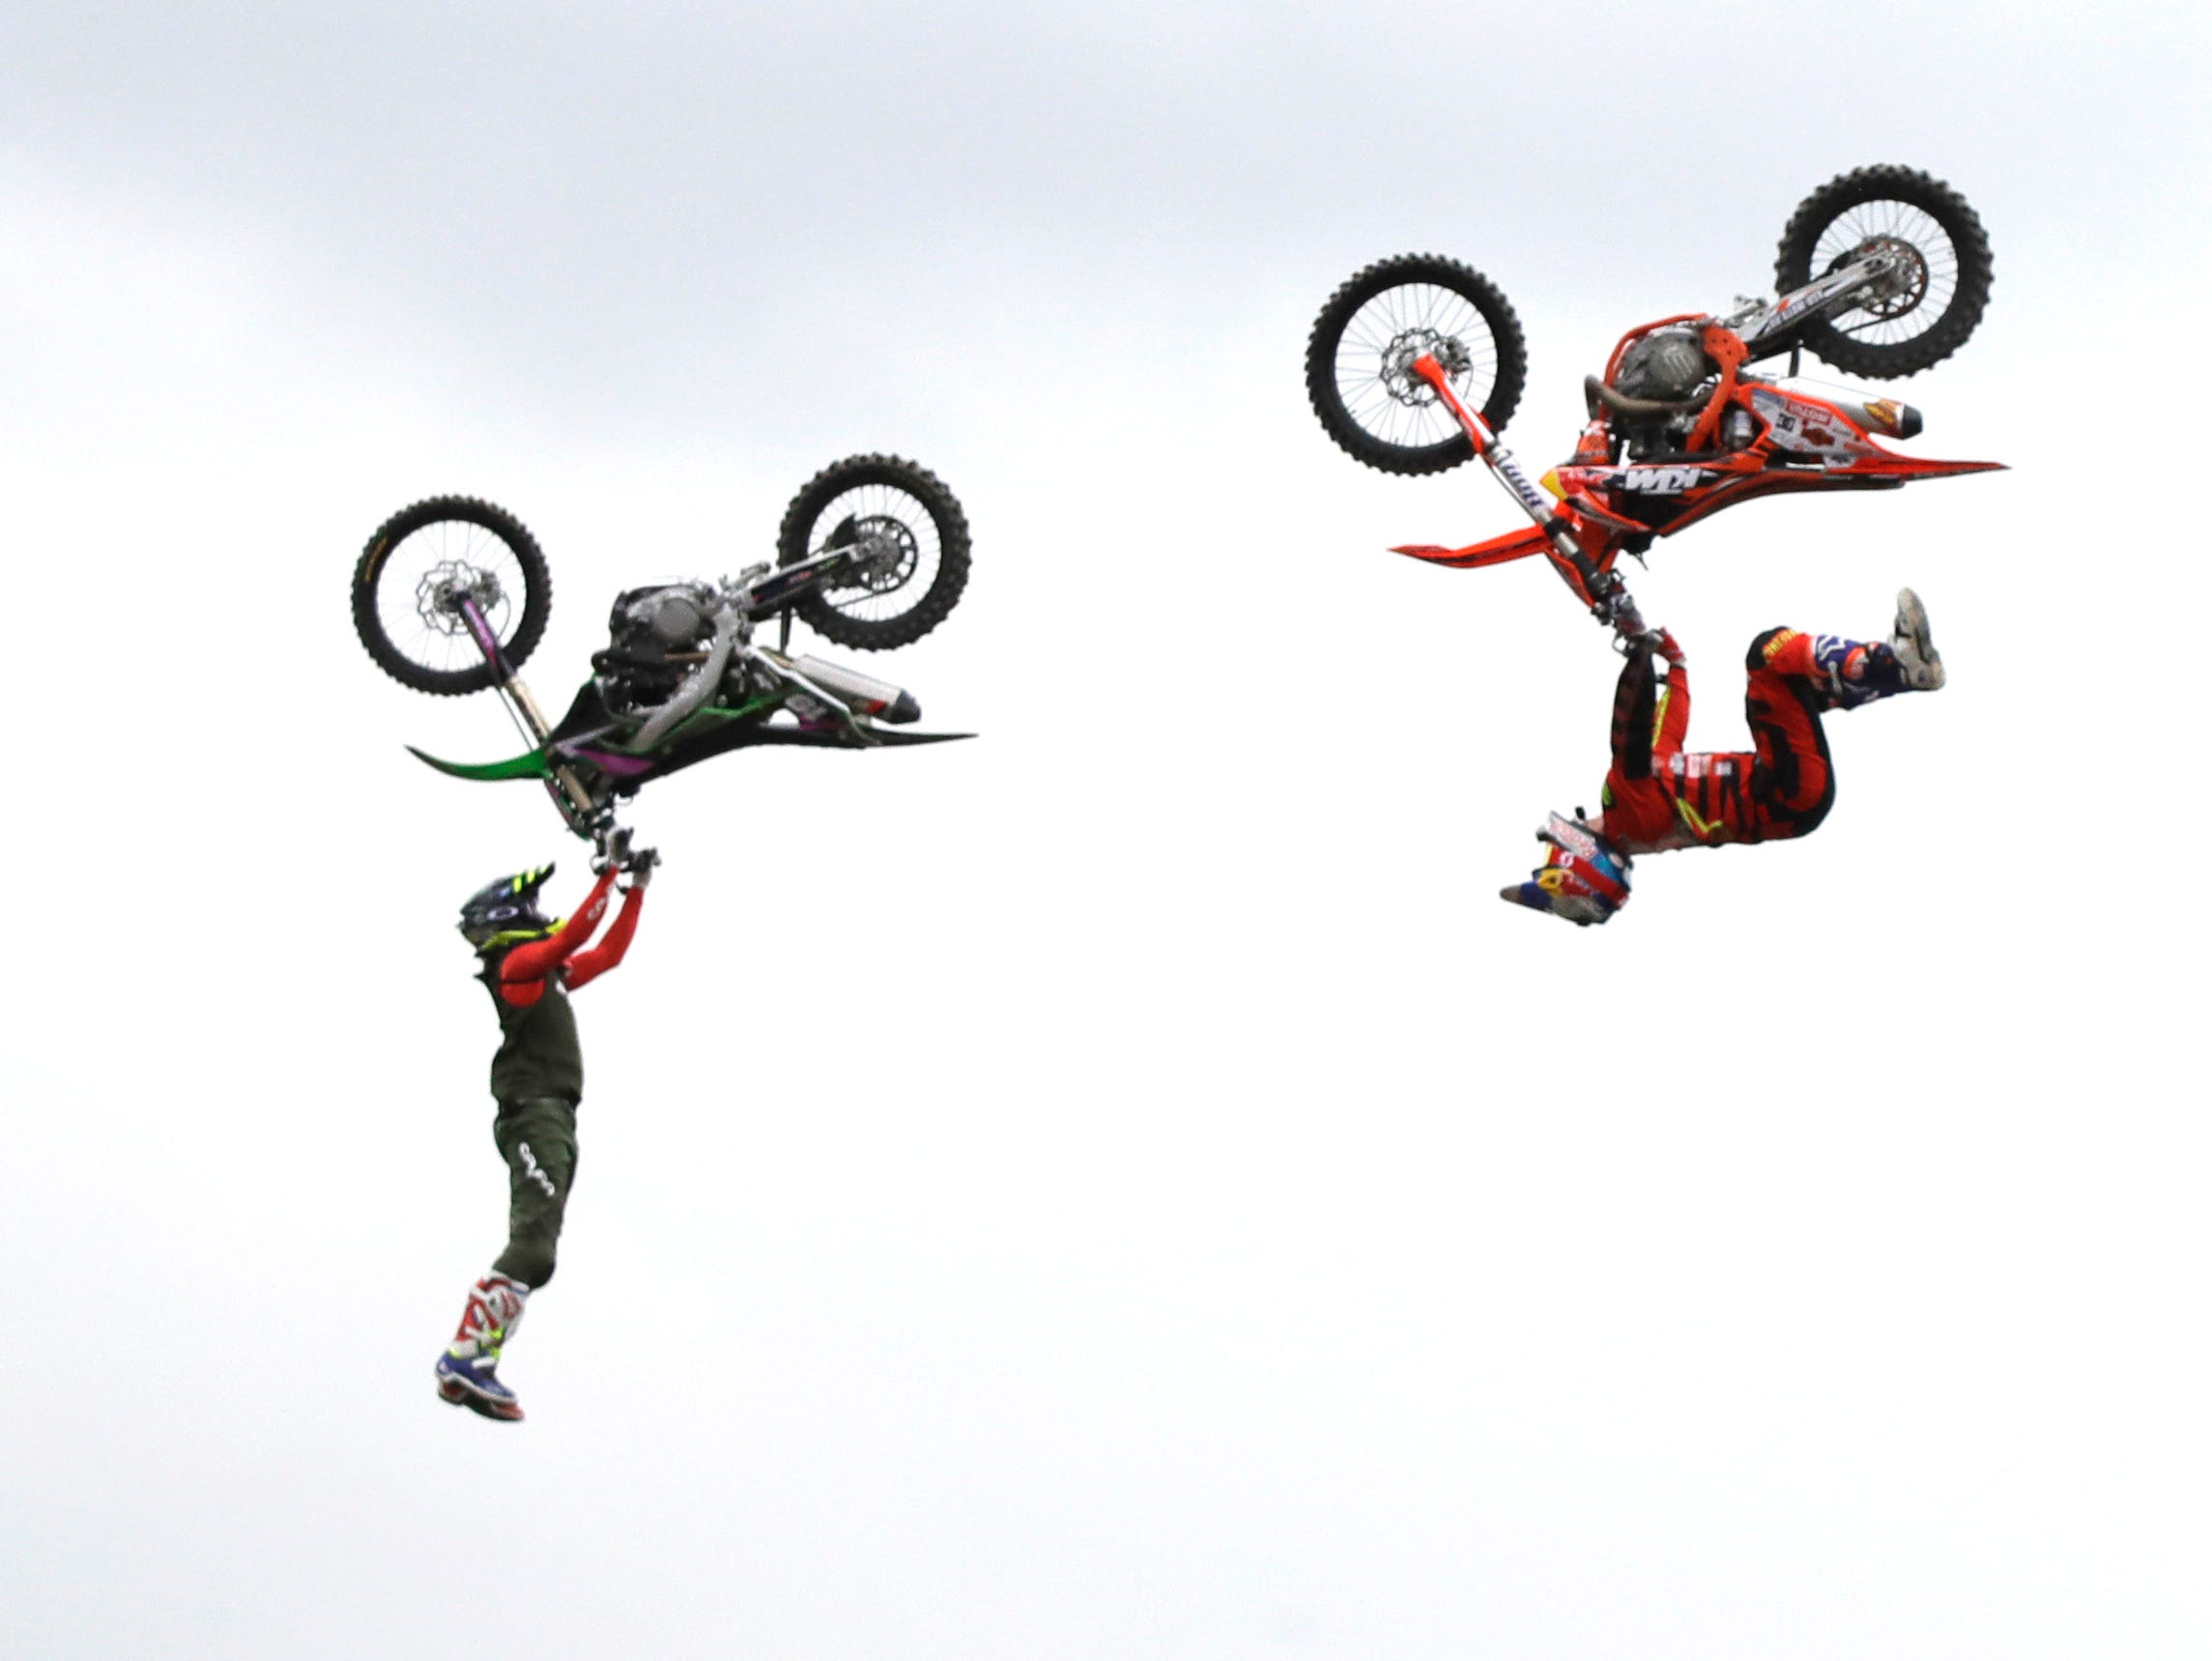 Riders perform during a freestyle motocross show at the EICMA exhibition motorcycle fair in Milan, Italy, Thursday, Nov. 8, 2018.